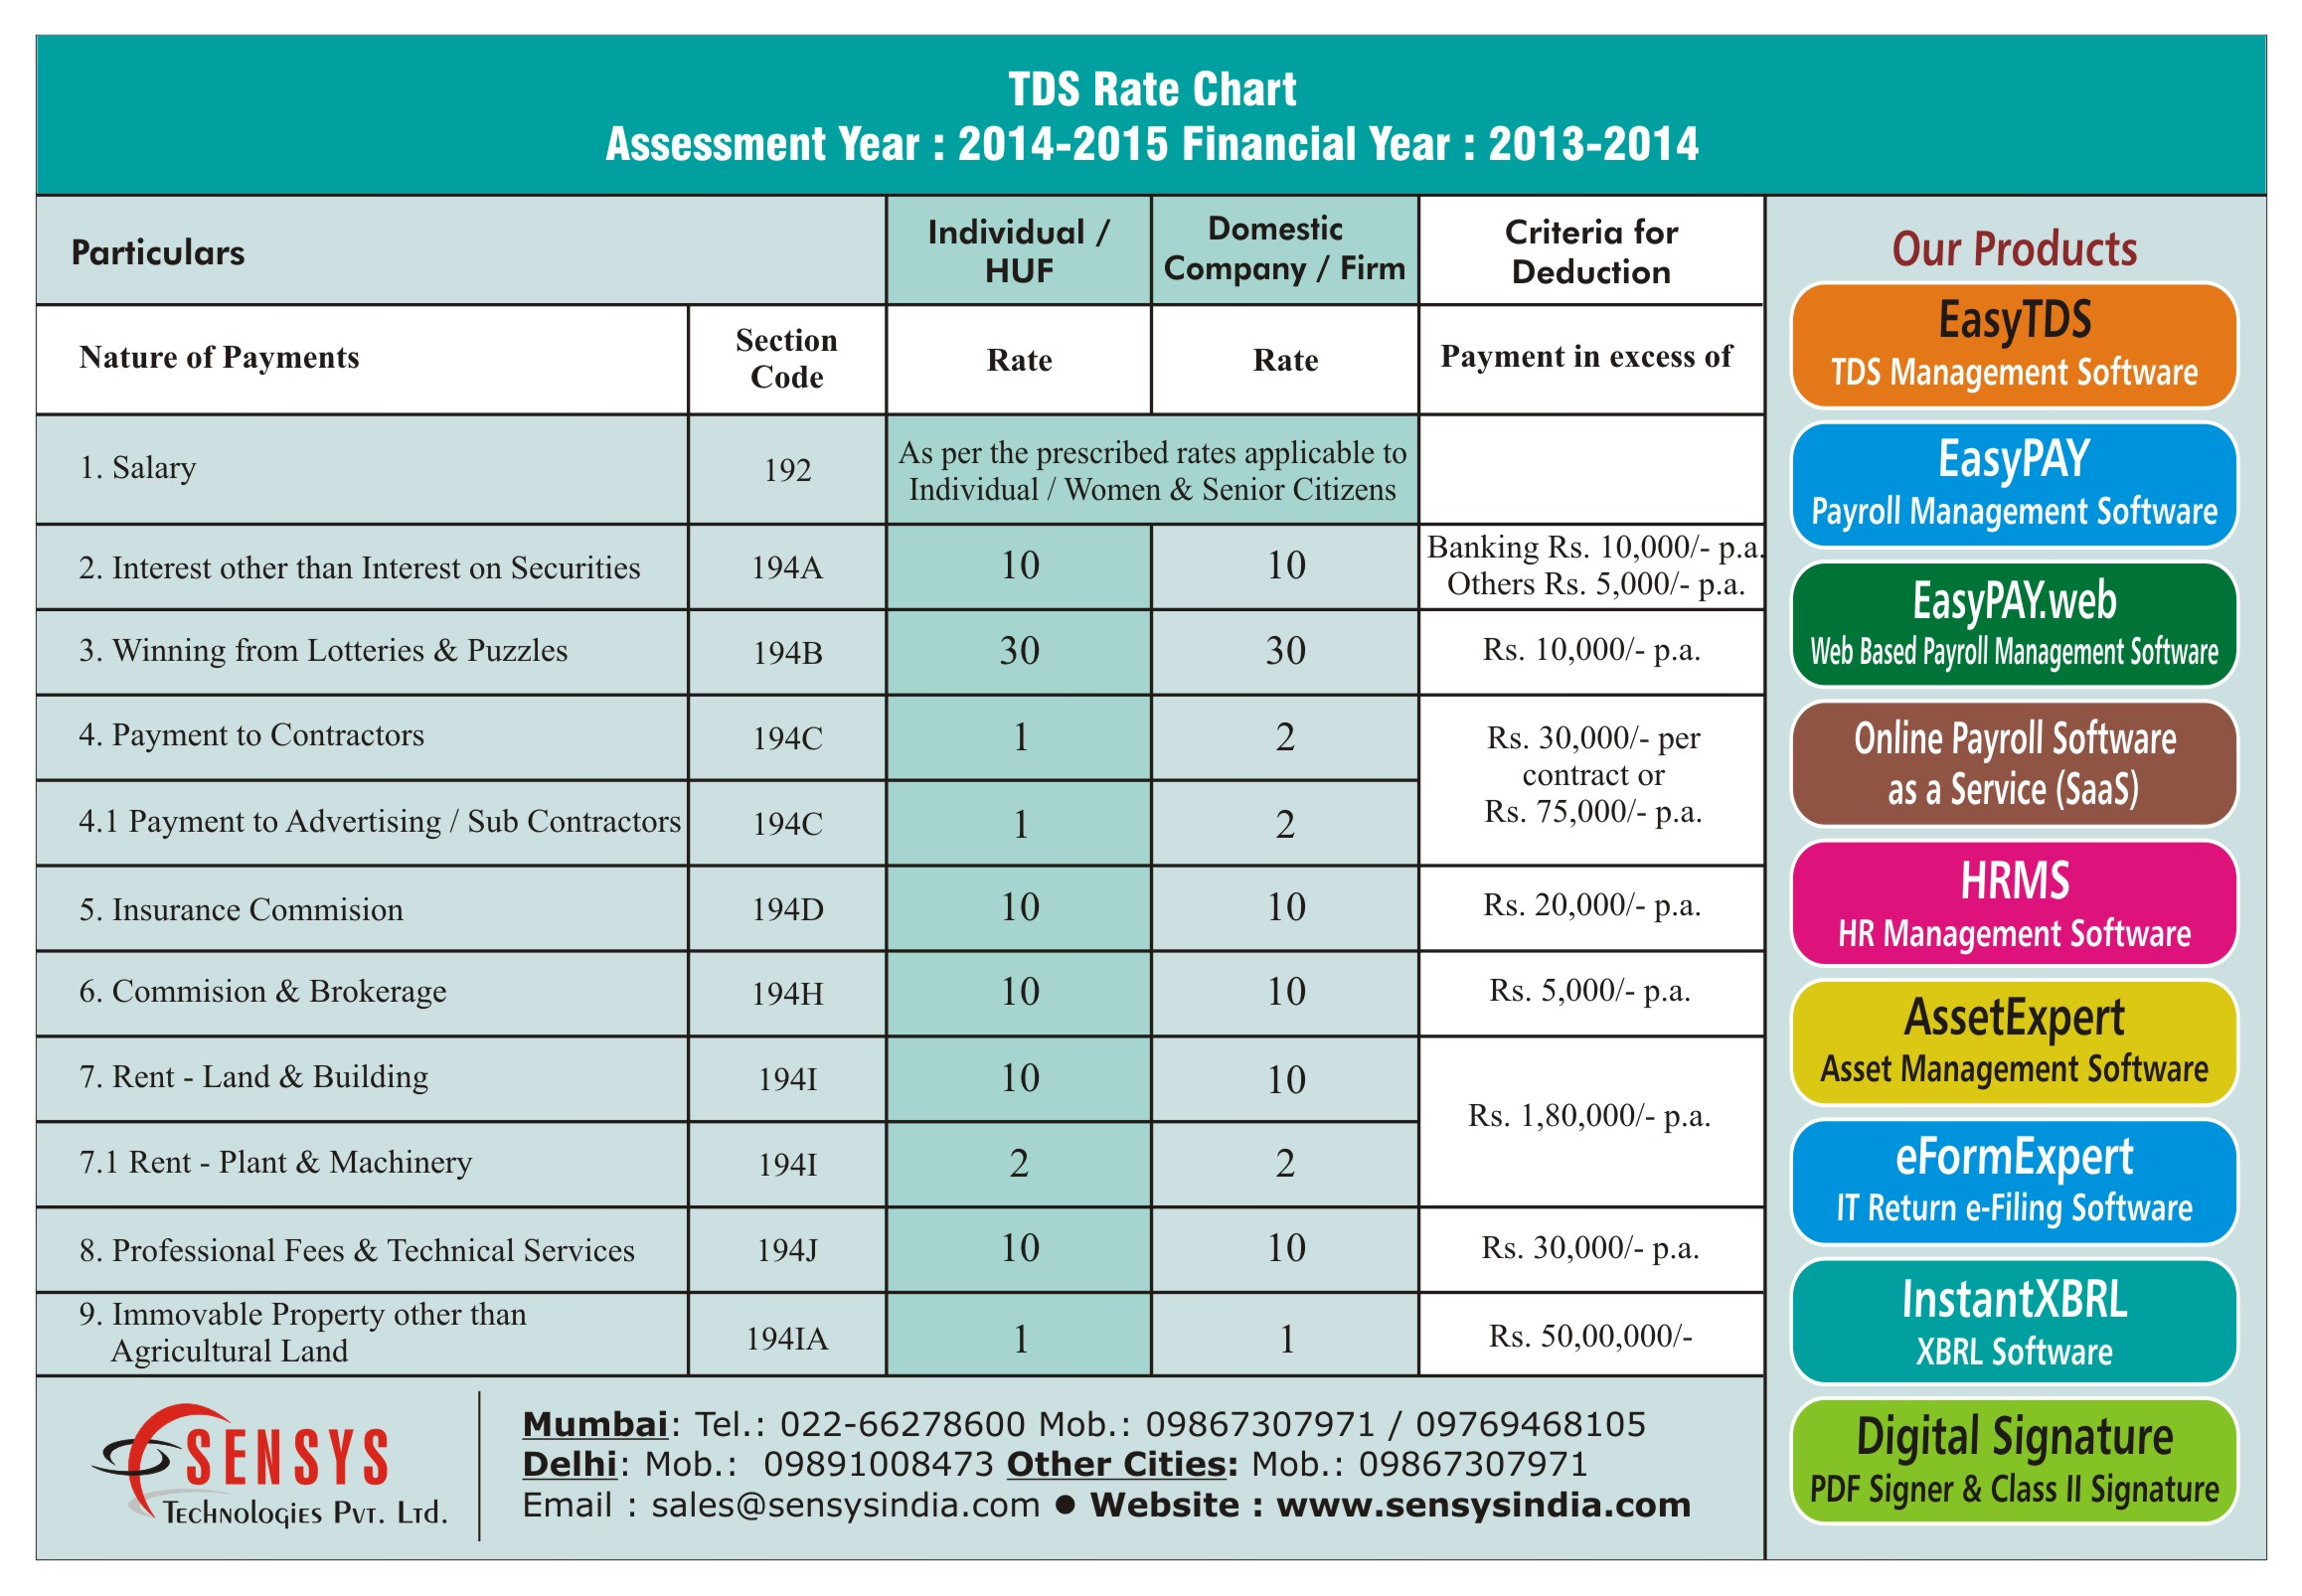 Superior TDS Rate Chart Assessment Year 2014 2015